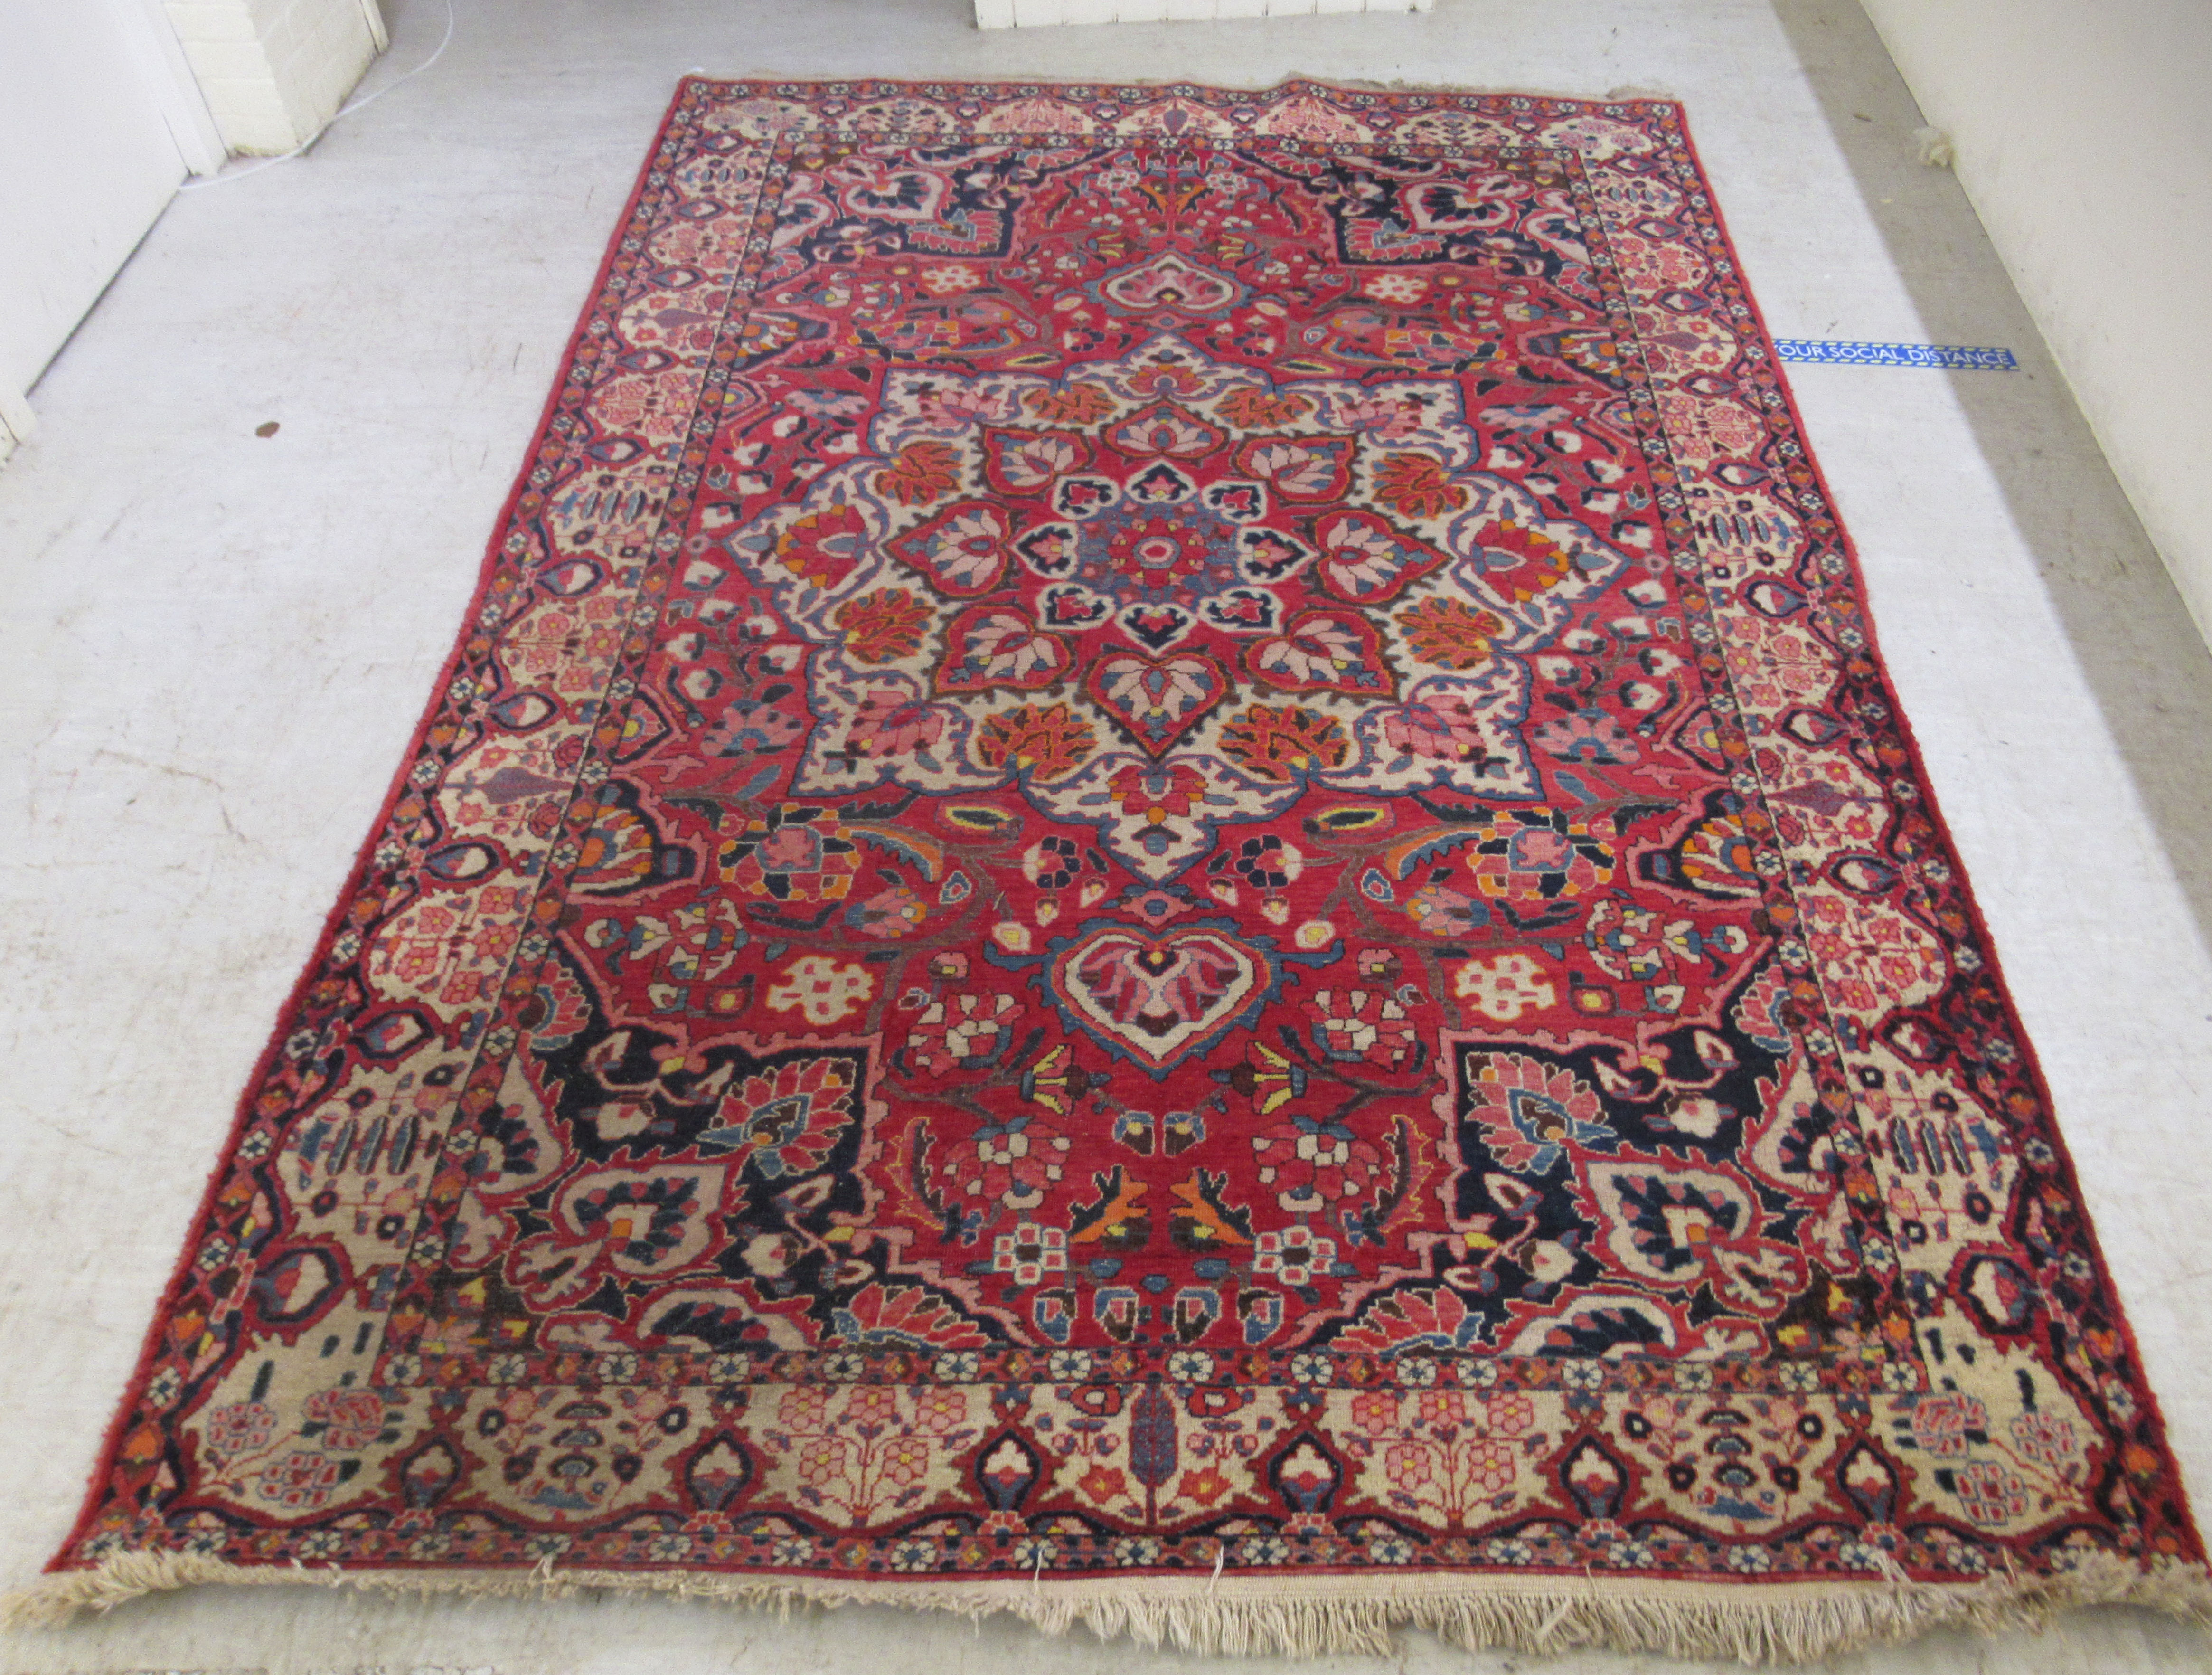 A Persian carpet, profusely decorated with flora and other designs, on a multi-coloured and red